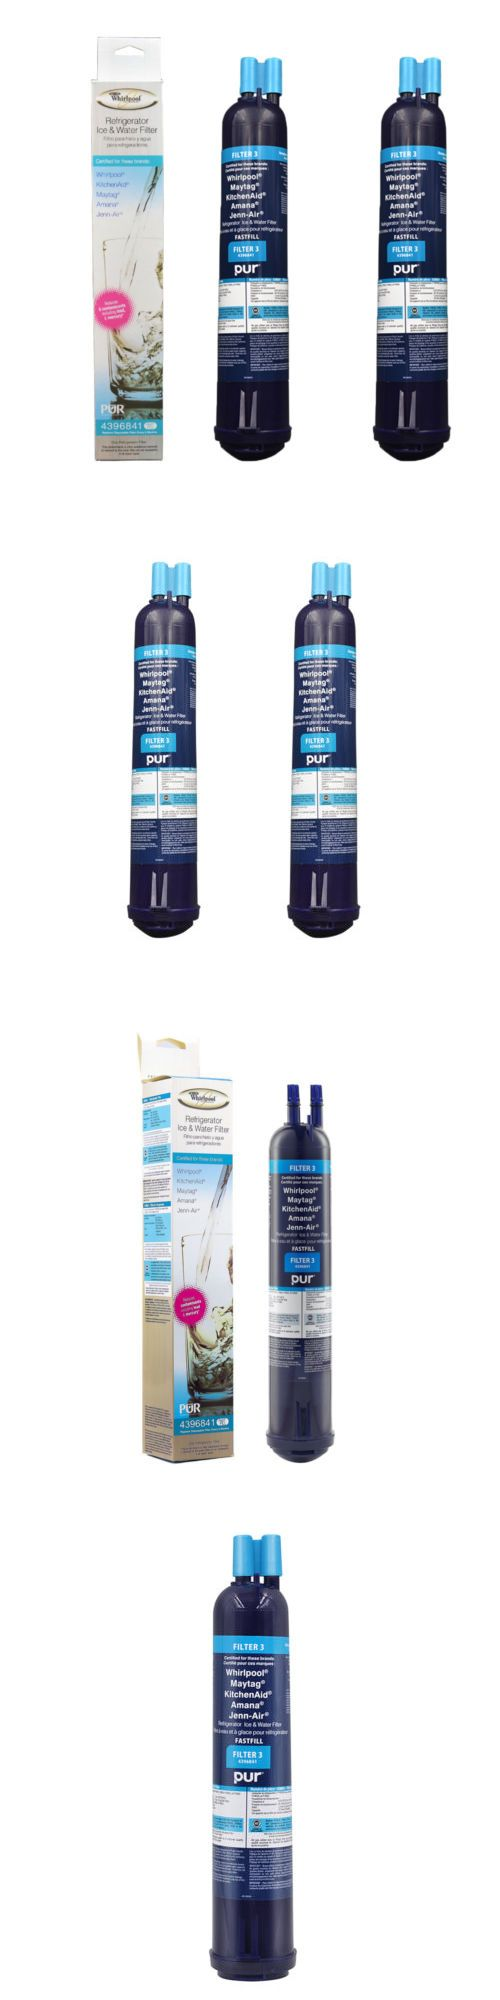 Water Filters 20684: 2Pack Whirlpool 4396841 Pur Push Button Side-By-Side Refrigerator Water Filter -> BUY IT NOW ONLY: $35.95 on eBay!